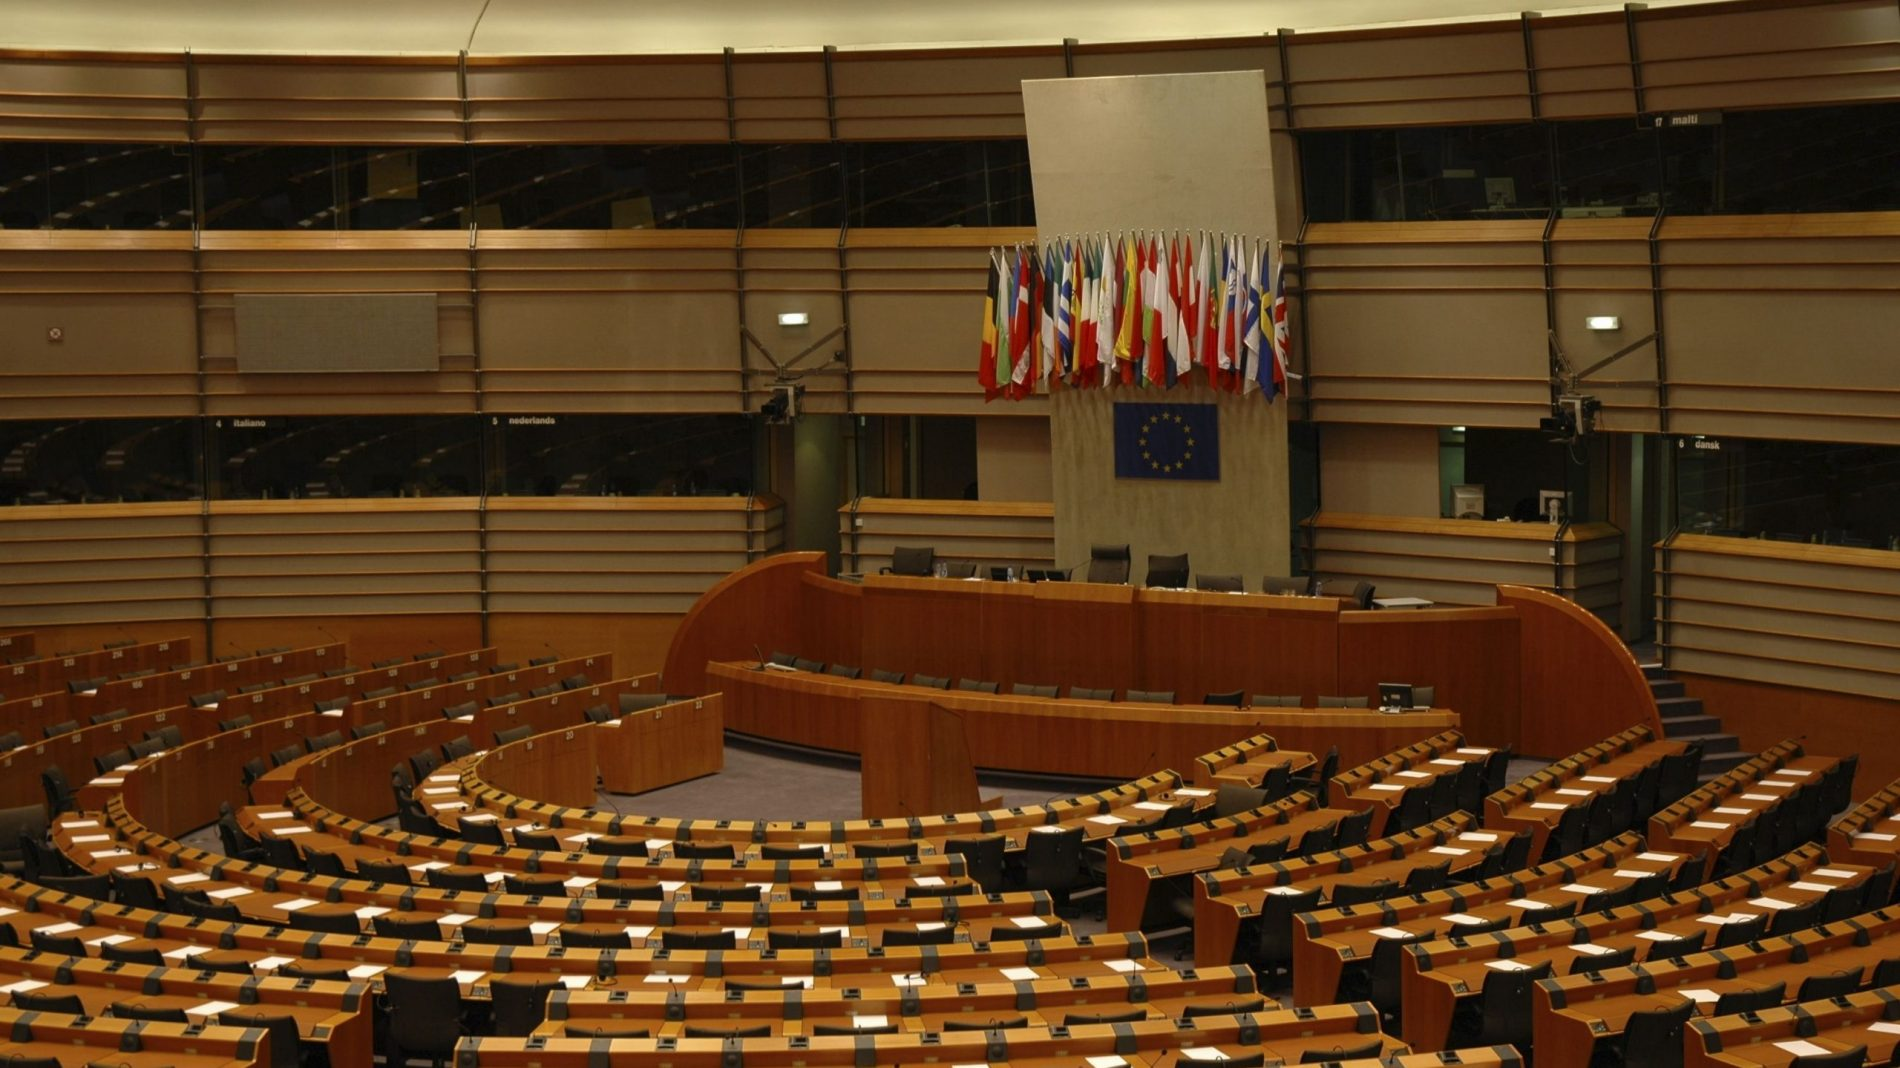 The European Parliament's hemicycle